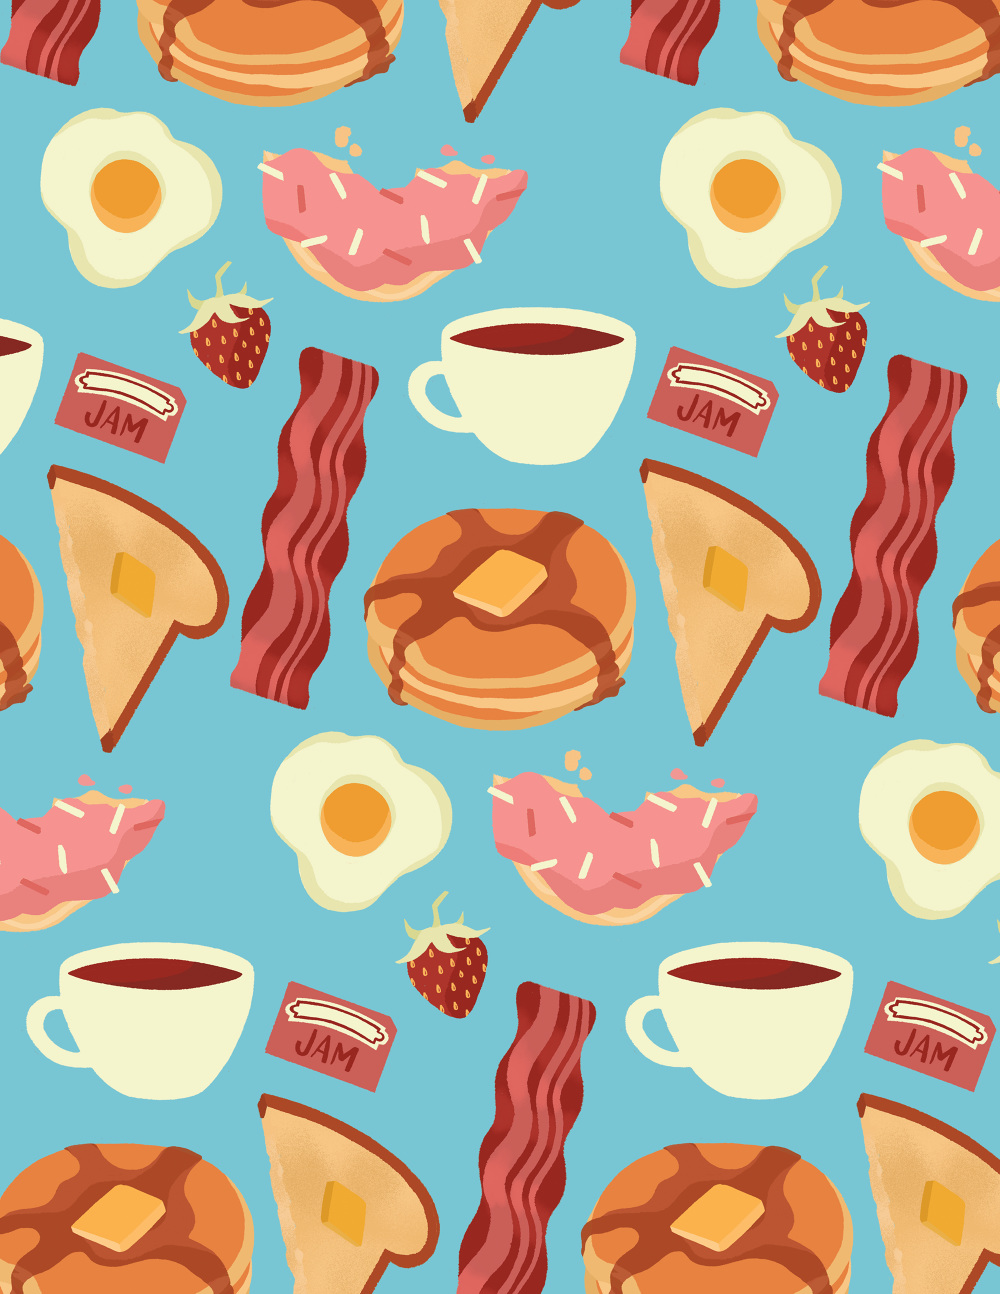 Cute Shoes Wallpaper Food Patterns Illustration By Niki Sauter